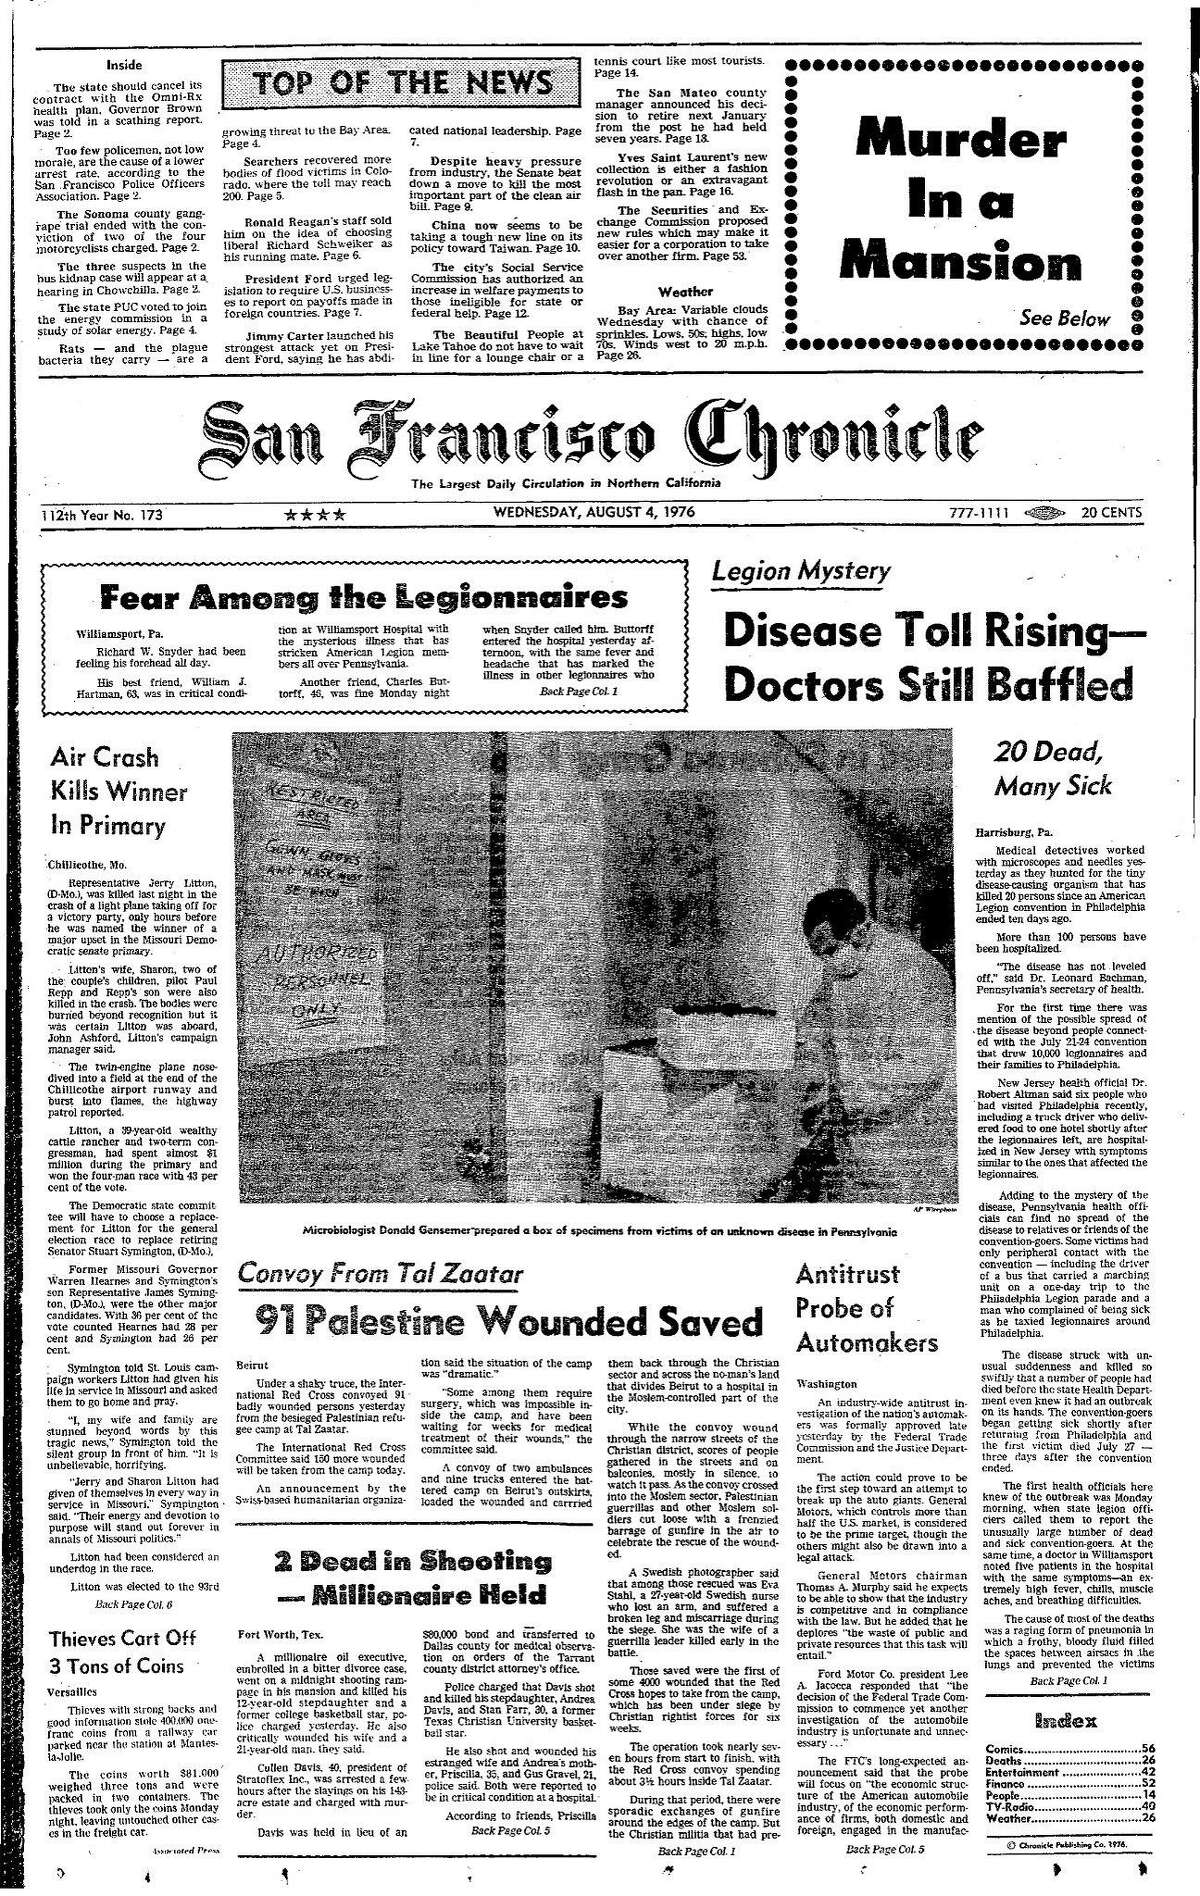 Historic Chronicle Front Page August 04, 1976 Legionaires Disease outbreak in Pennsylvania hotel Chron365, Chroncover